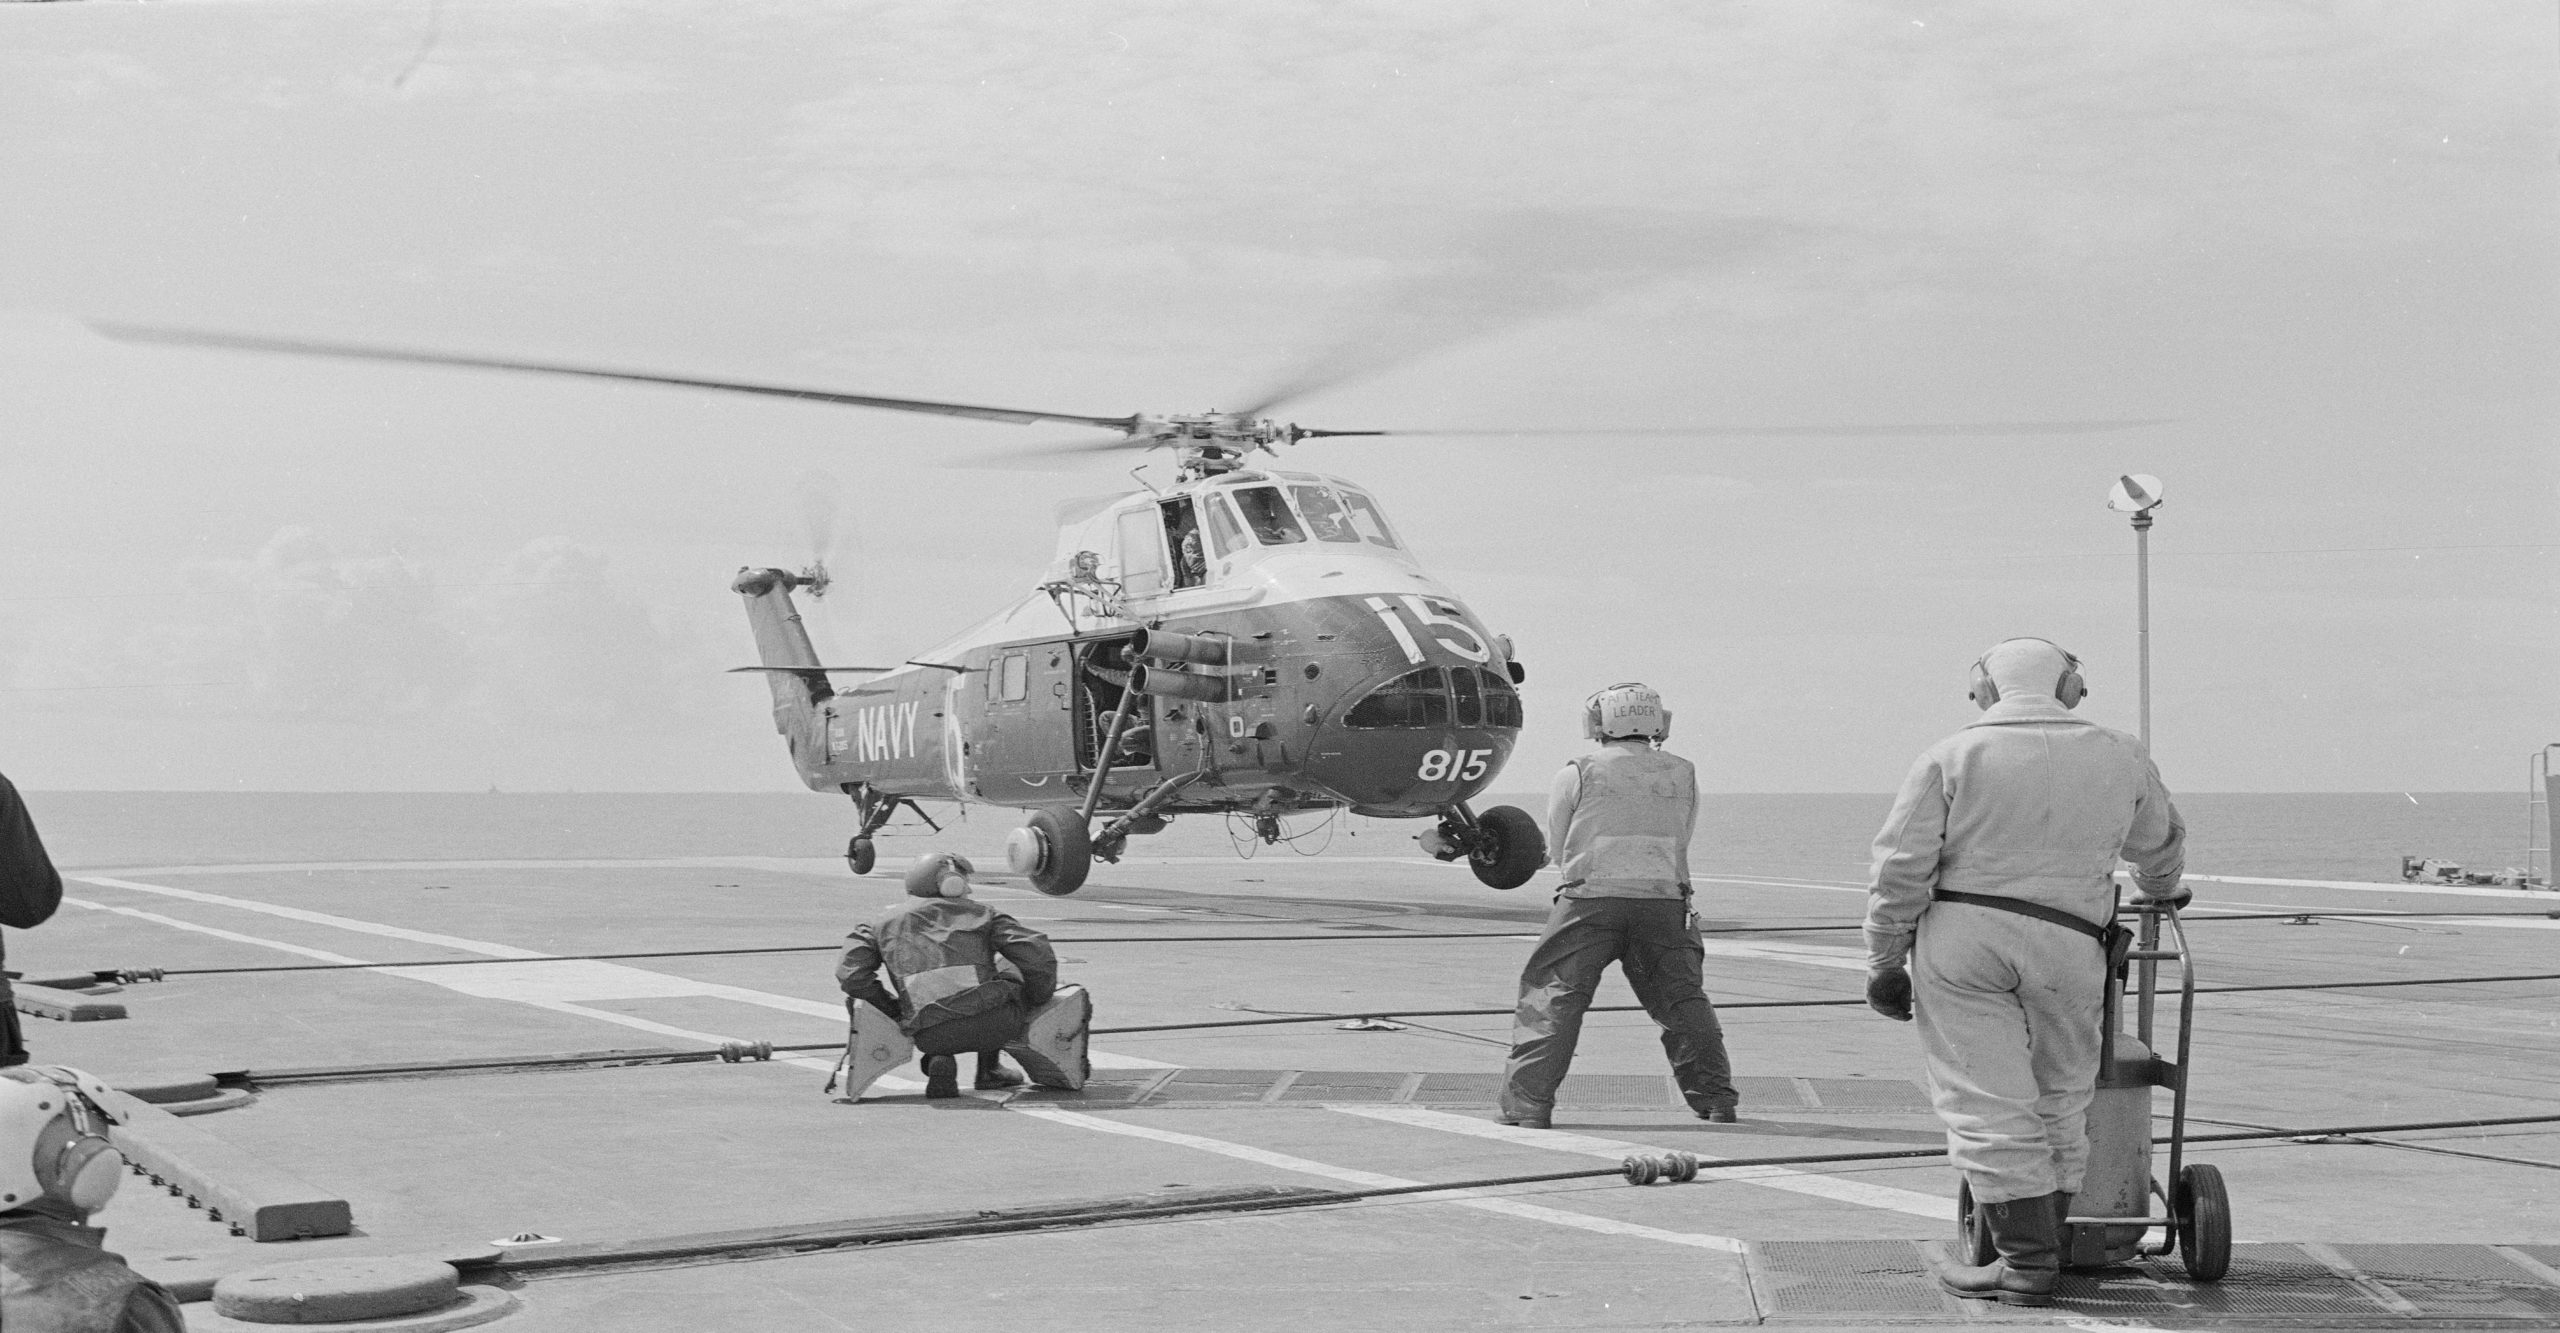 Wessex 815 Landing on HMAS Melbourne